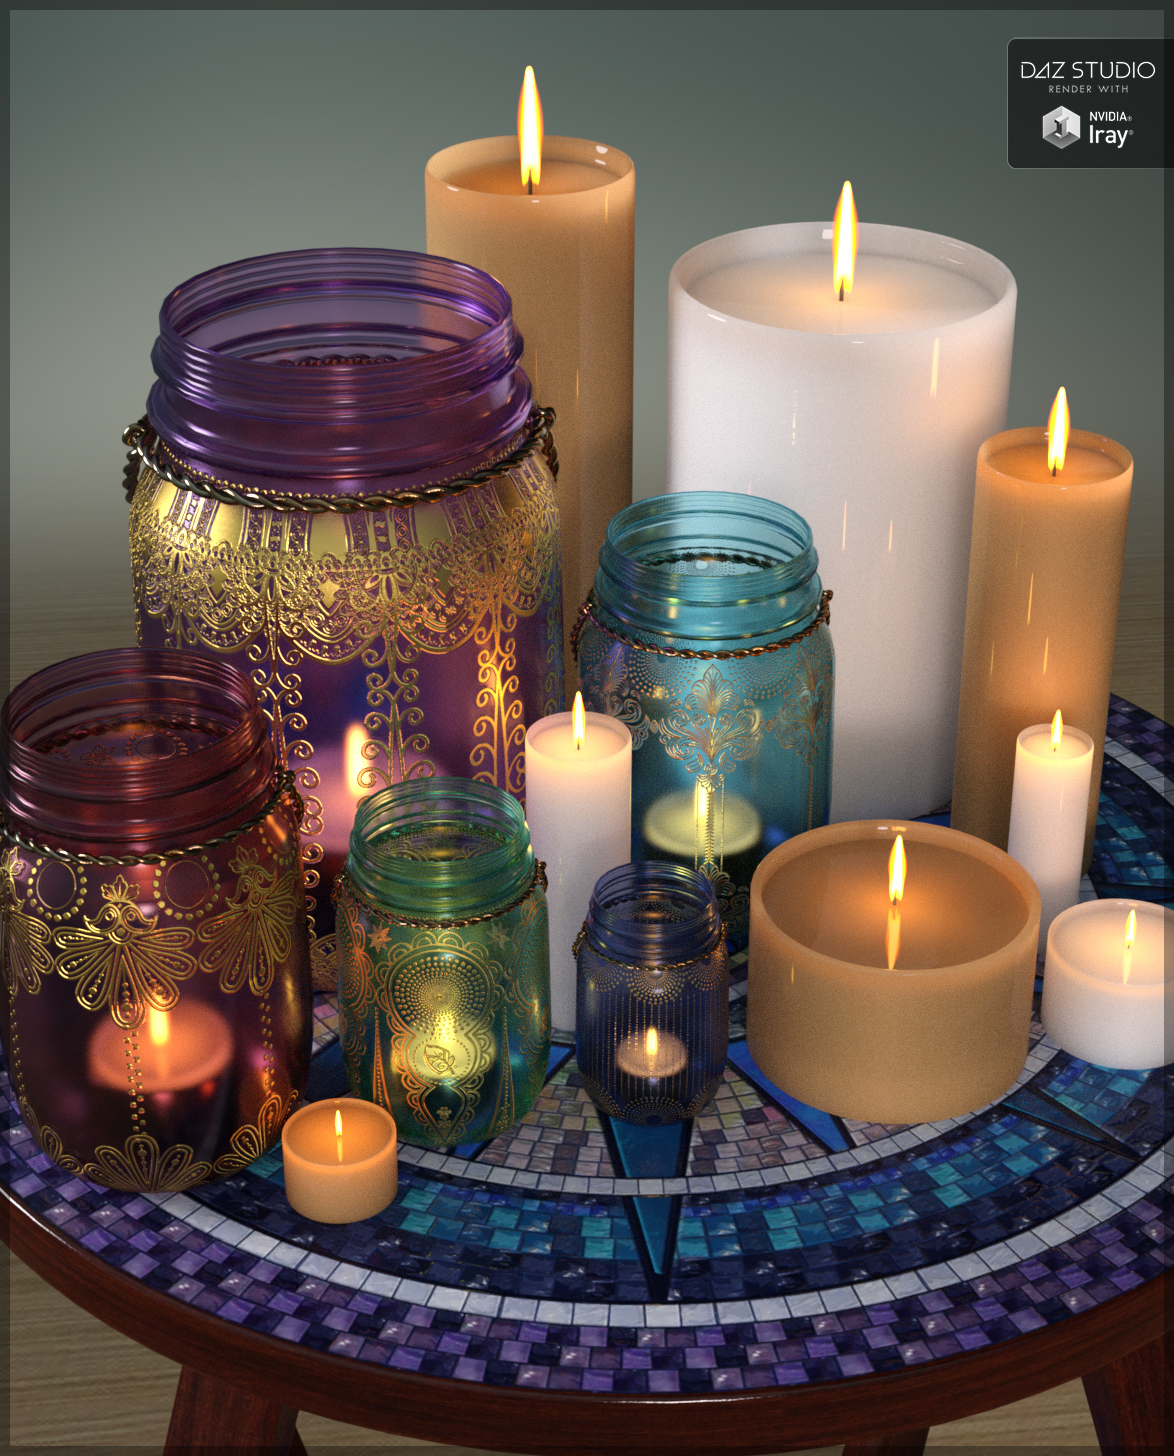 Vasetti Vetro Amazon Bohemian Candles By Sveva Daz Studio Still Life